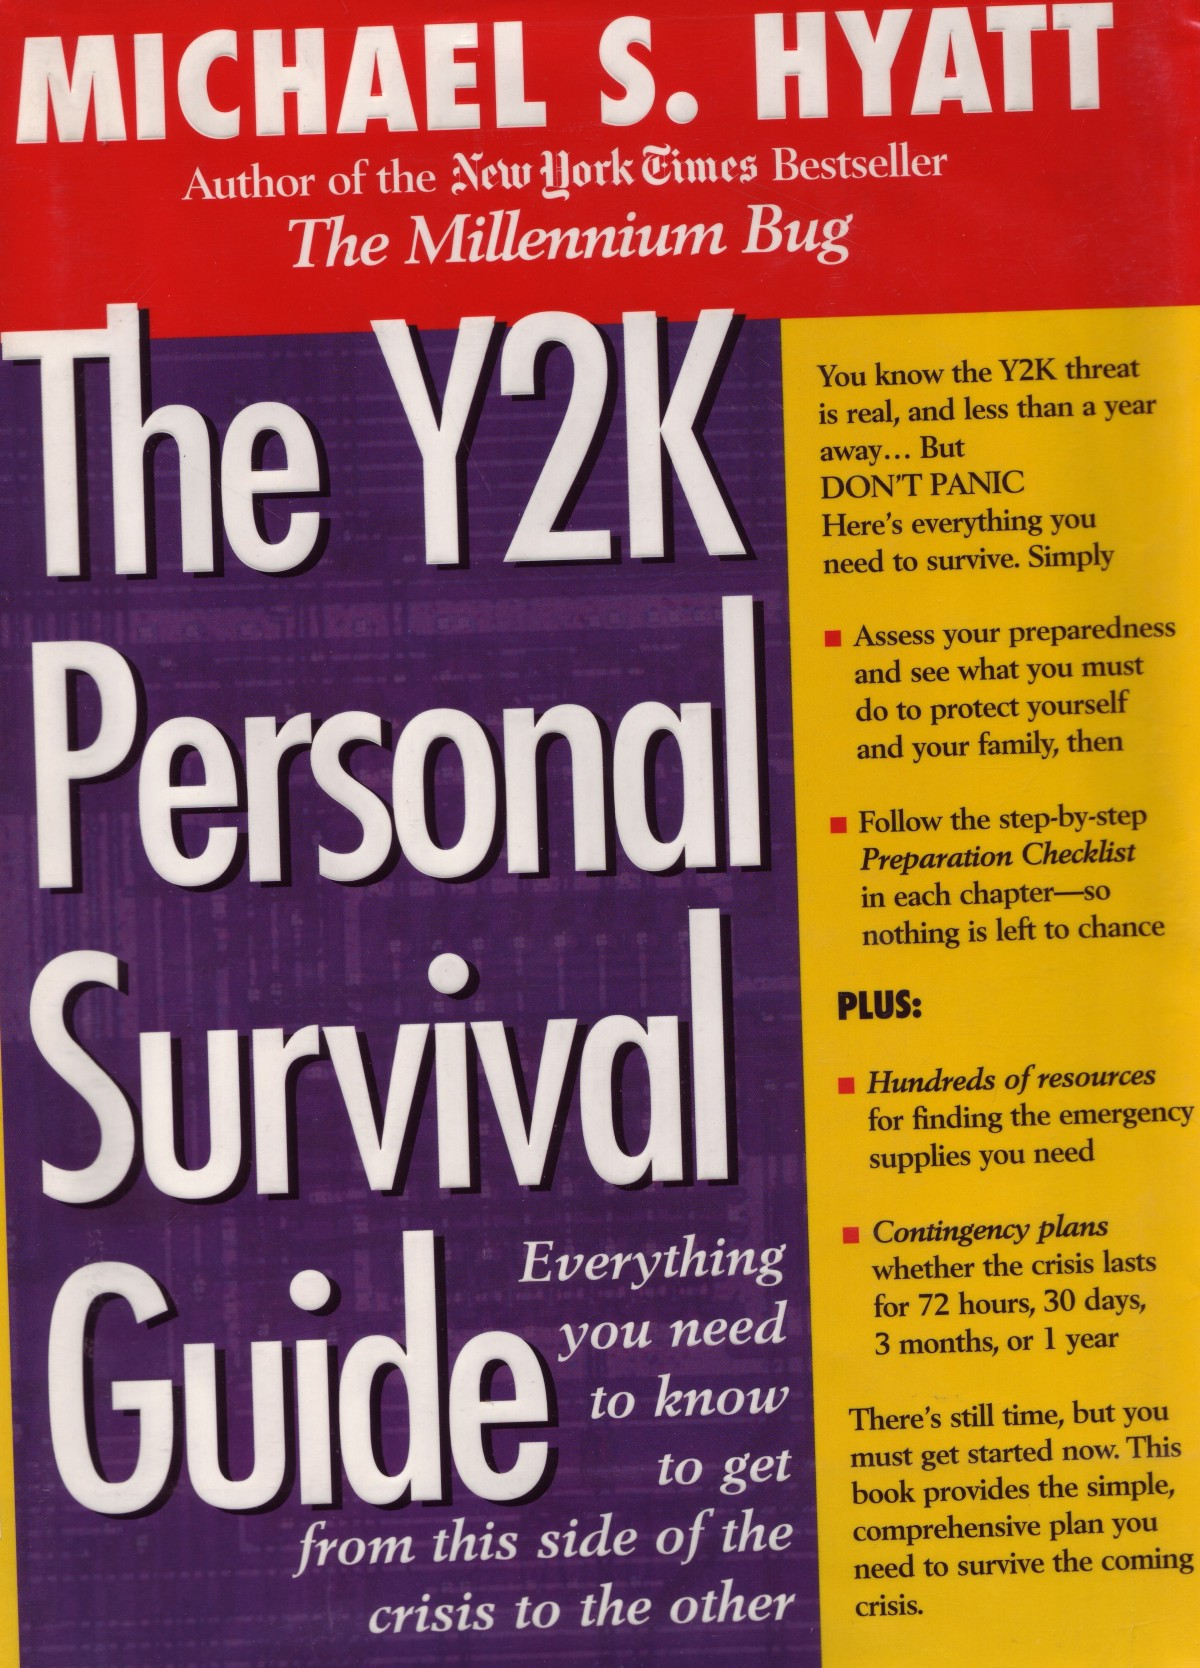 an analysis of the fear surrounding the y2k bug in the computer industry